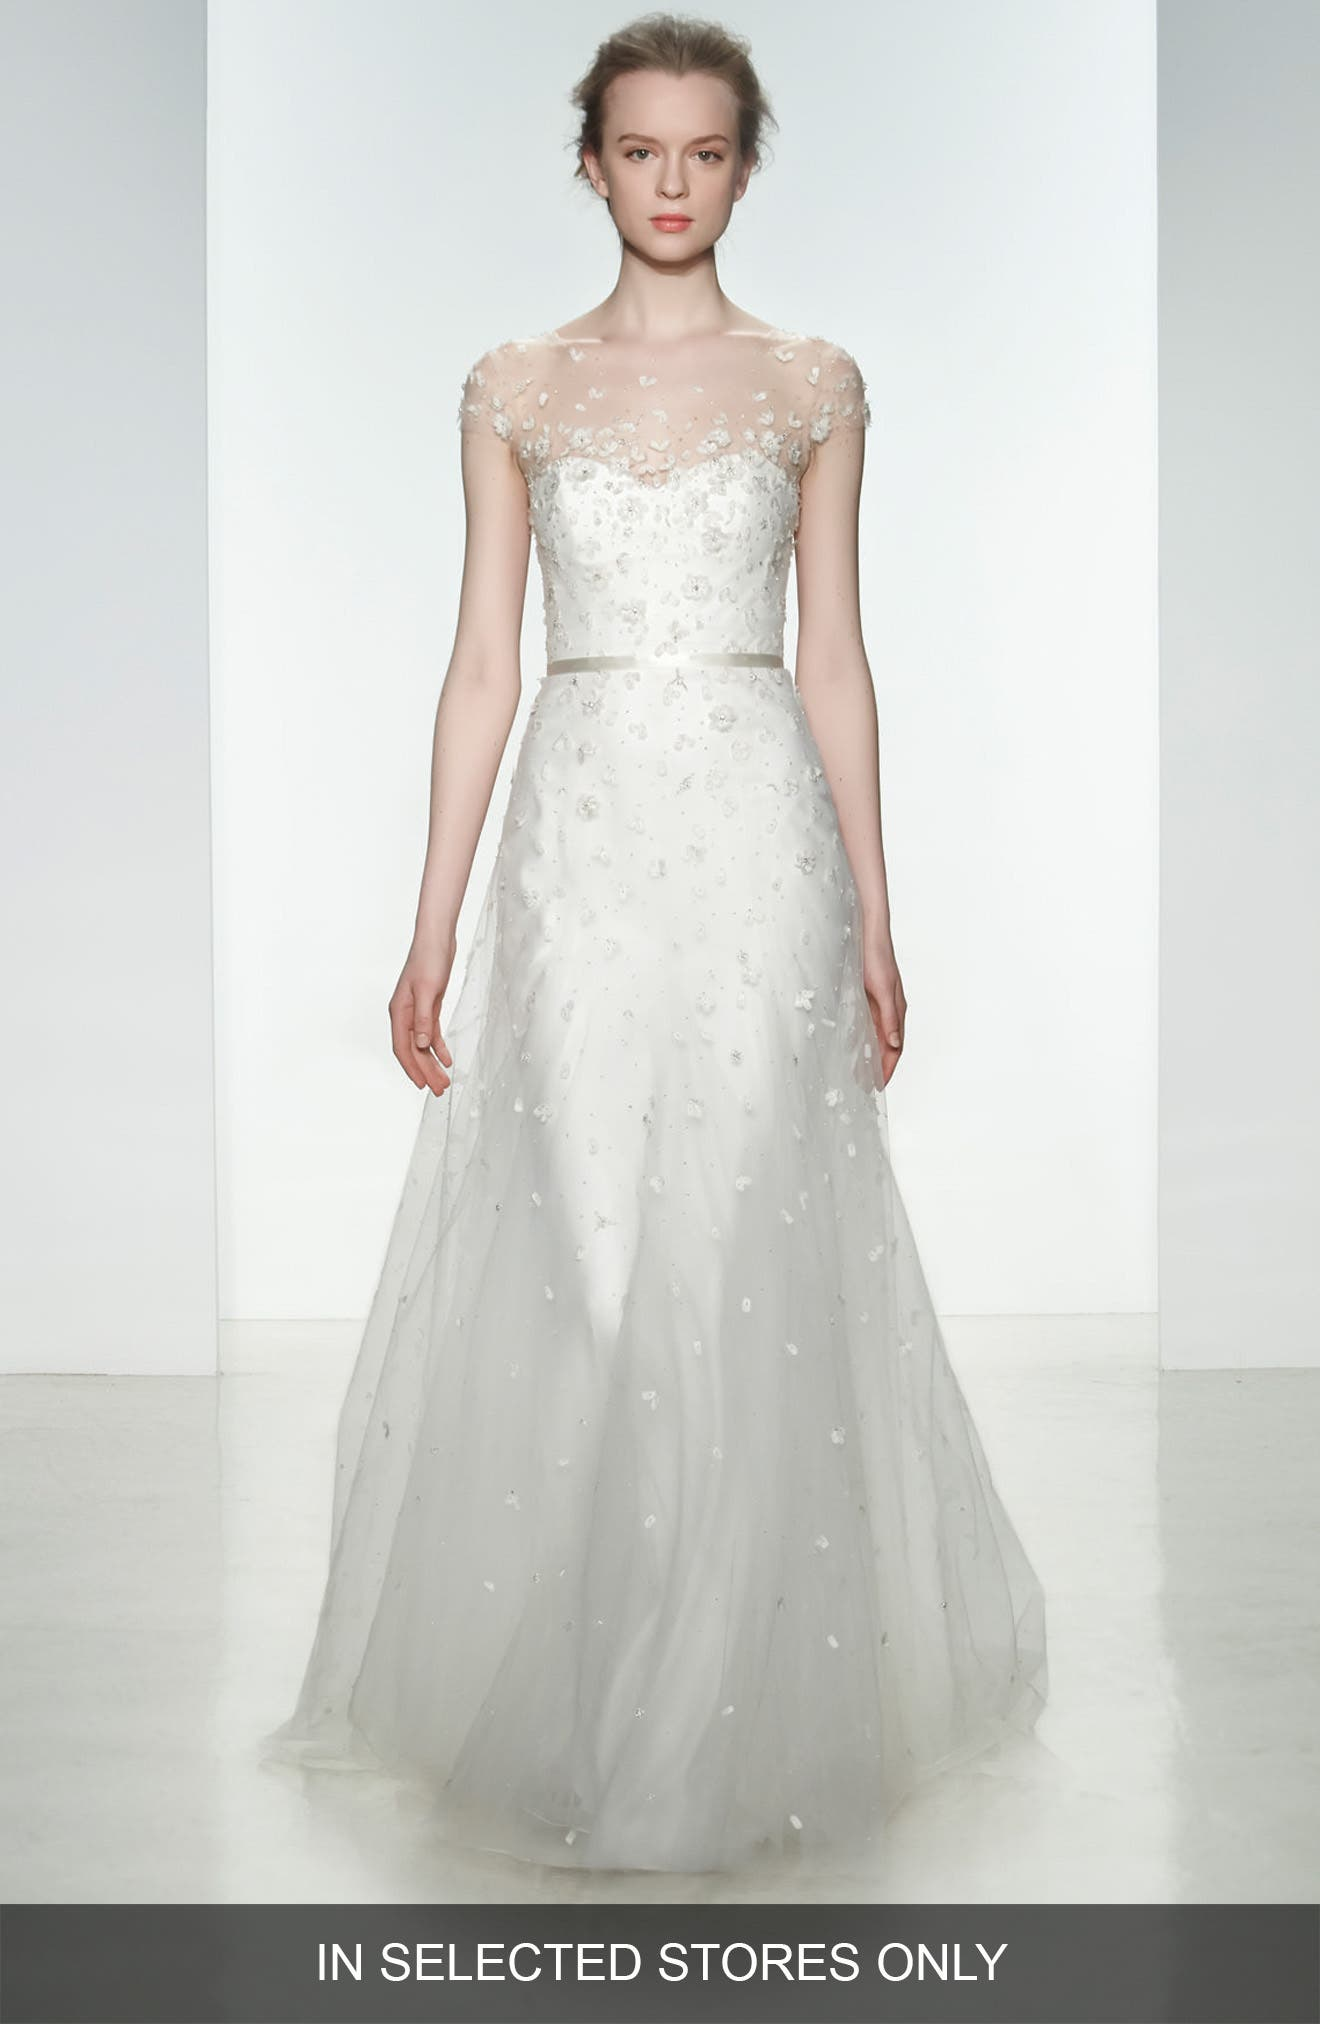 Alternate Image 1 Selected - Christos Bridal Ellie Embellished Illusion Neck Tulle Gown